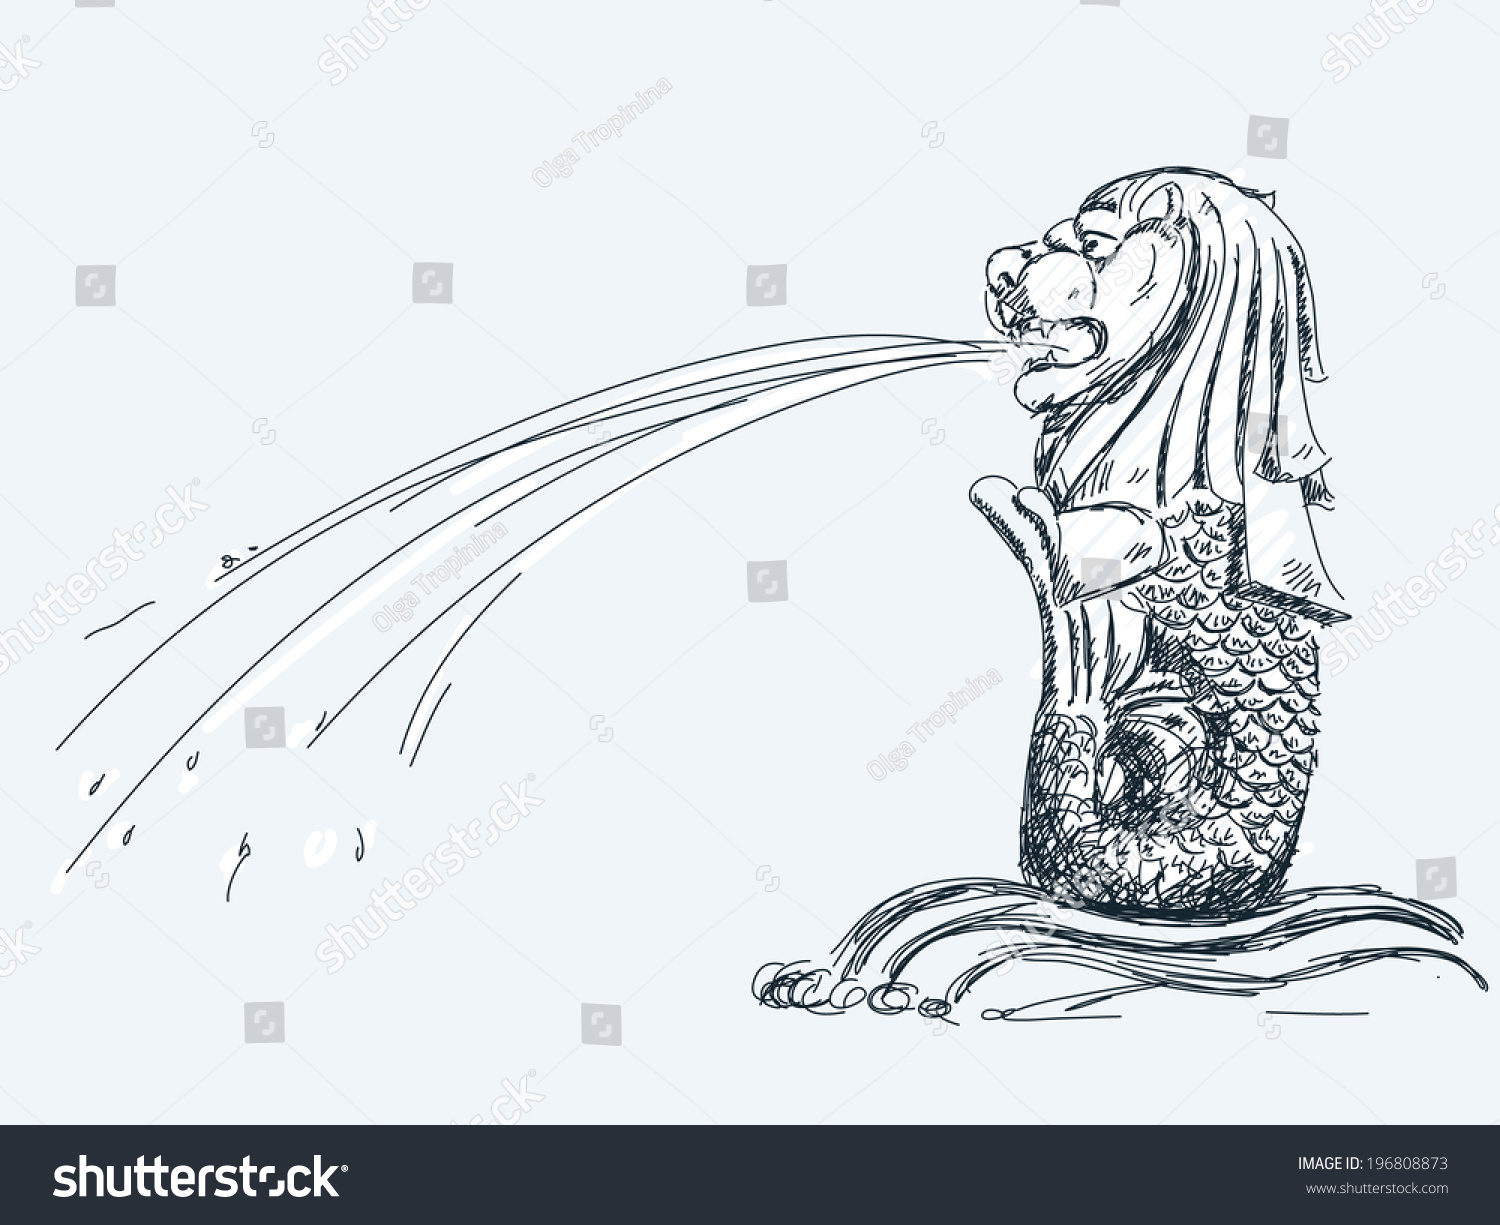 June 05 2014 Merlion Fountain In Singapore Hand Drawn Sketch